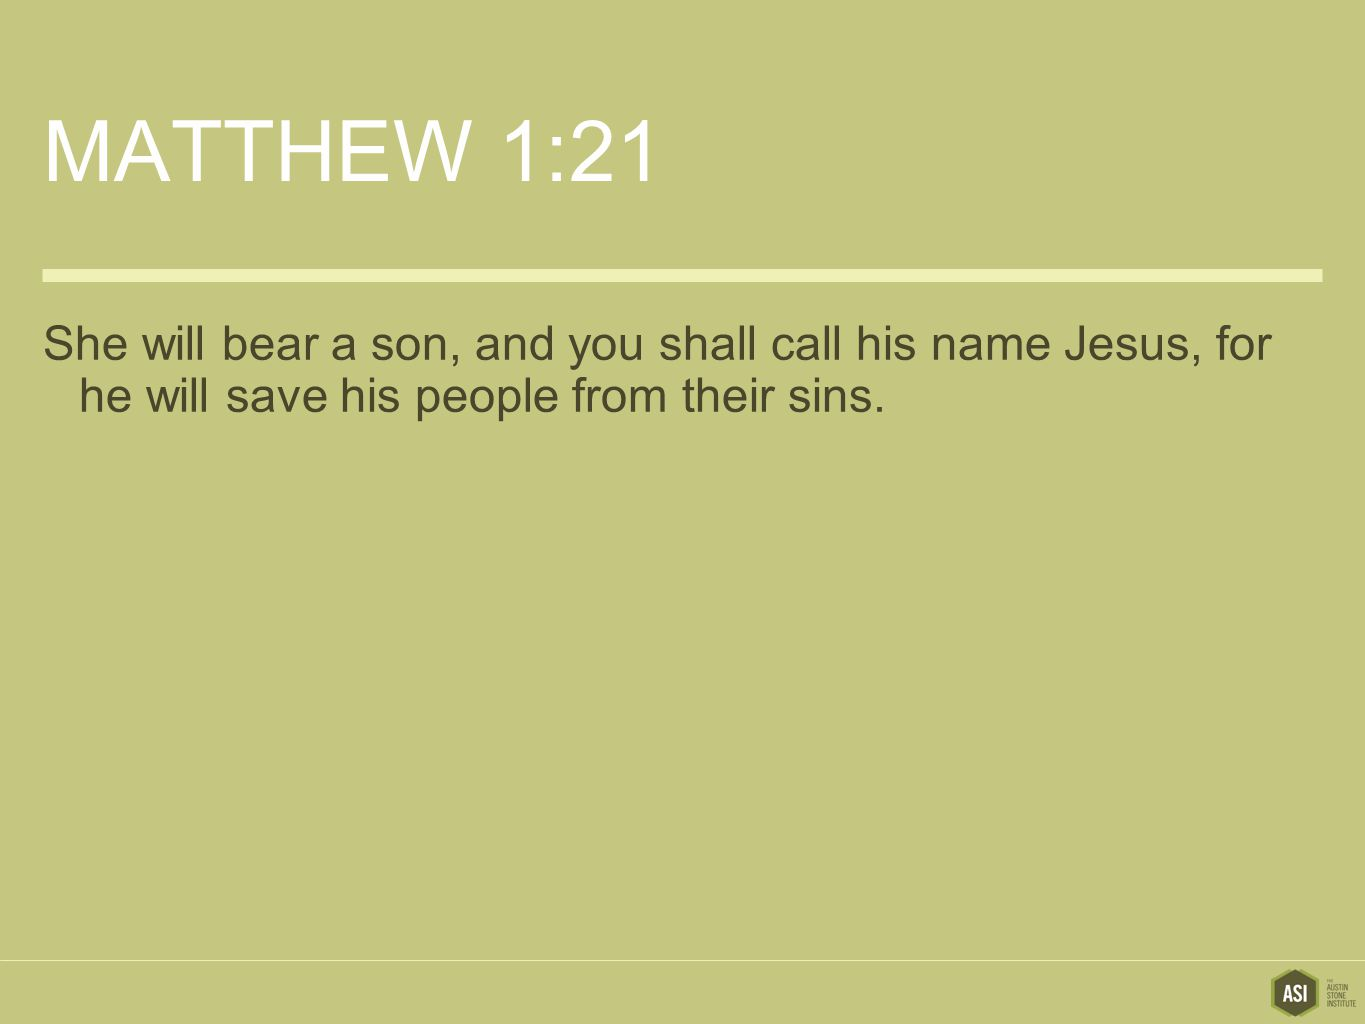 MATTHEW 1:21 She will bear a son, and you shall call his name Jesus, for he will save his people from their sins.